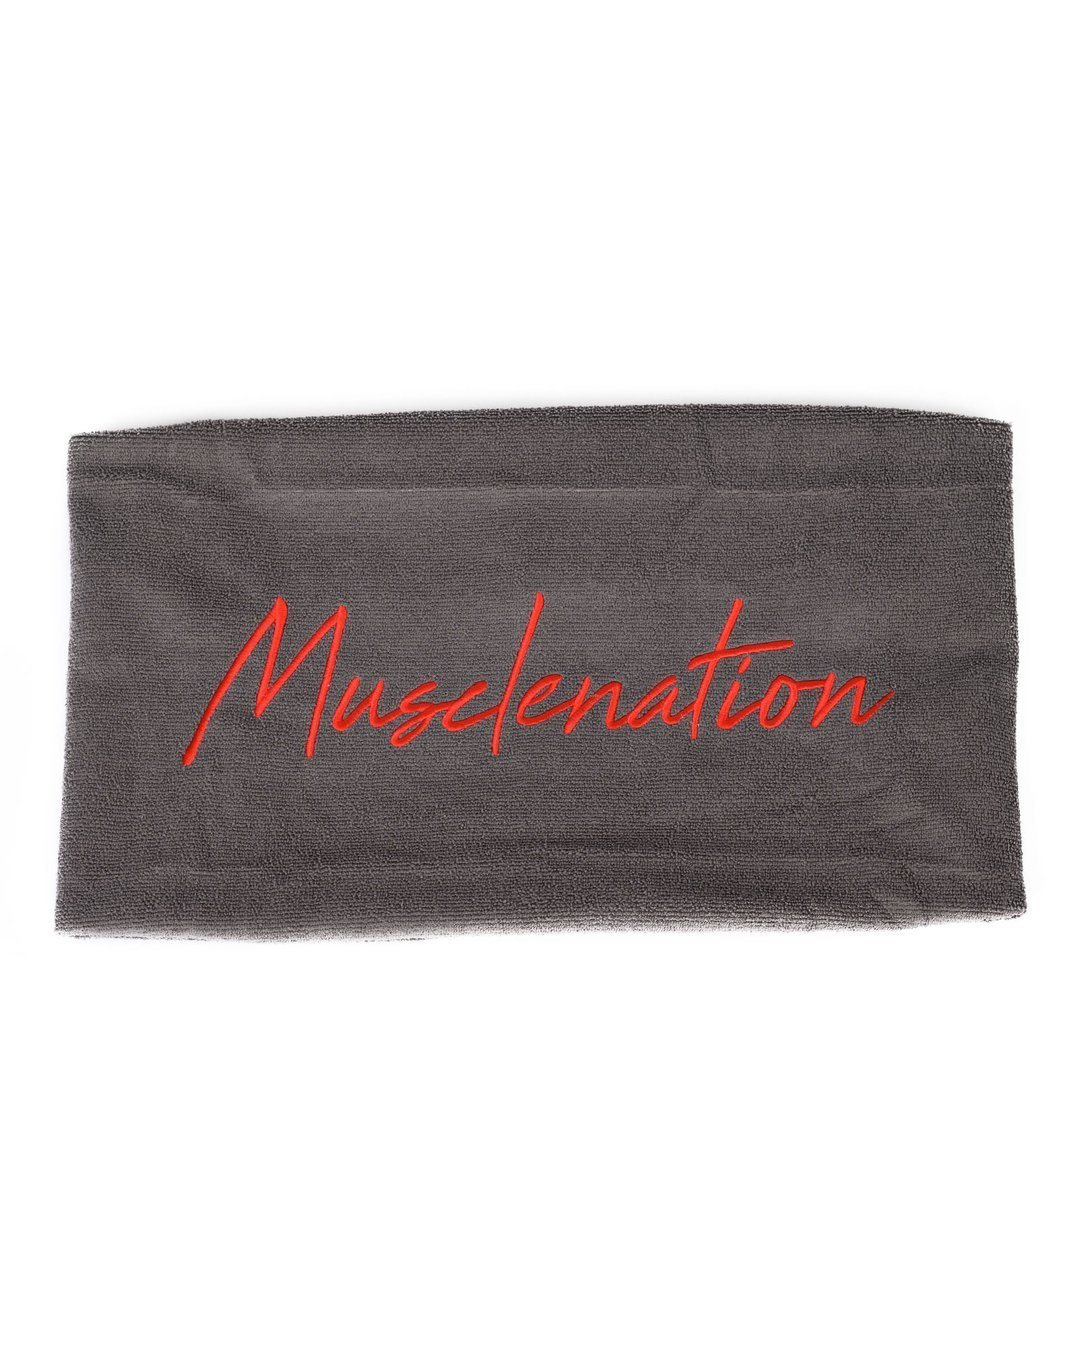 Muscle Nation Signature Gym Towel - Grey